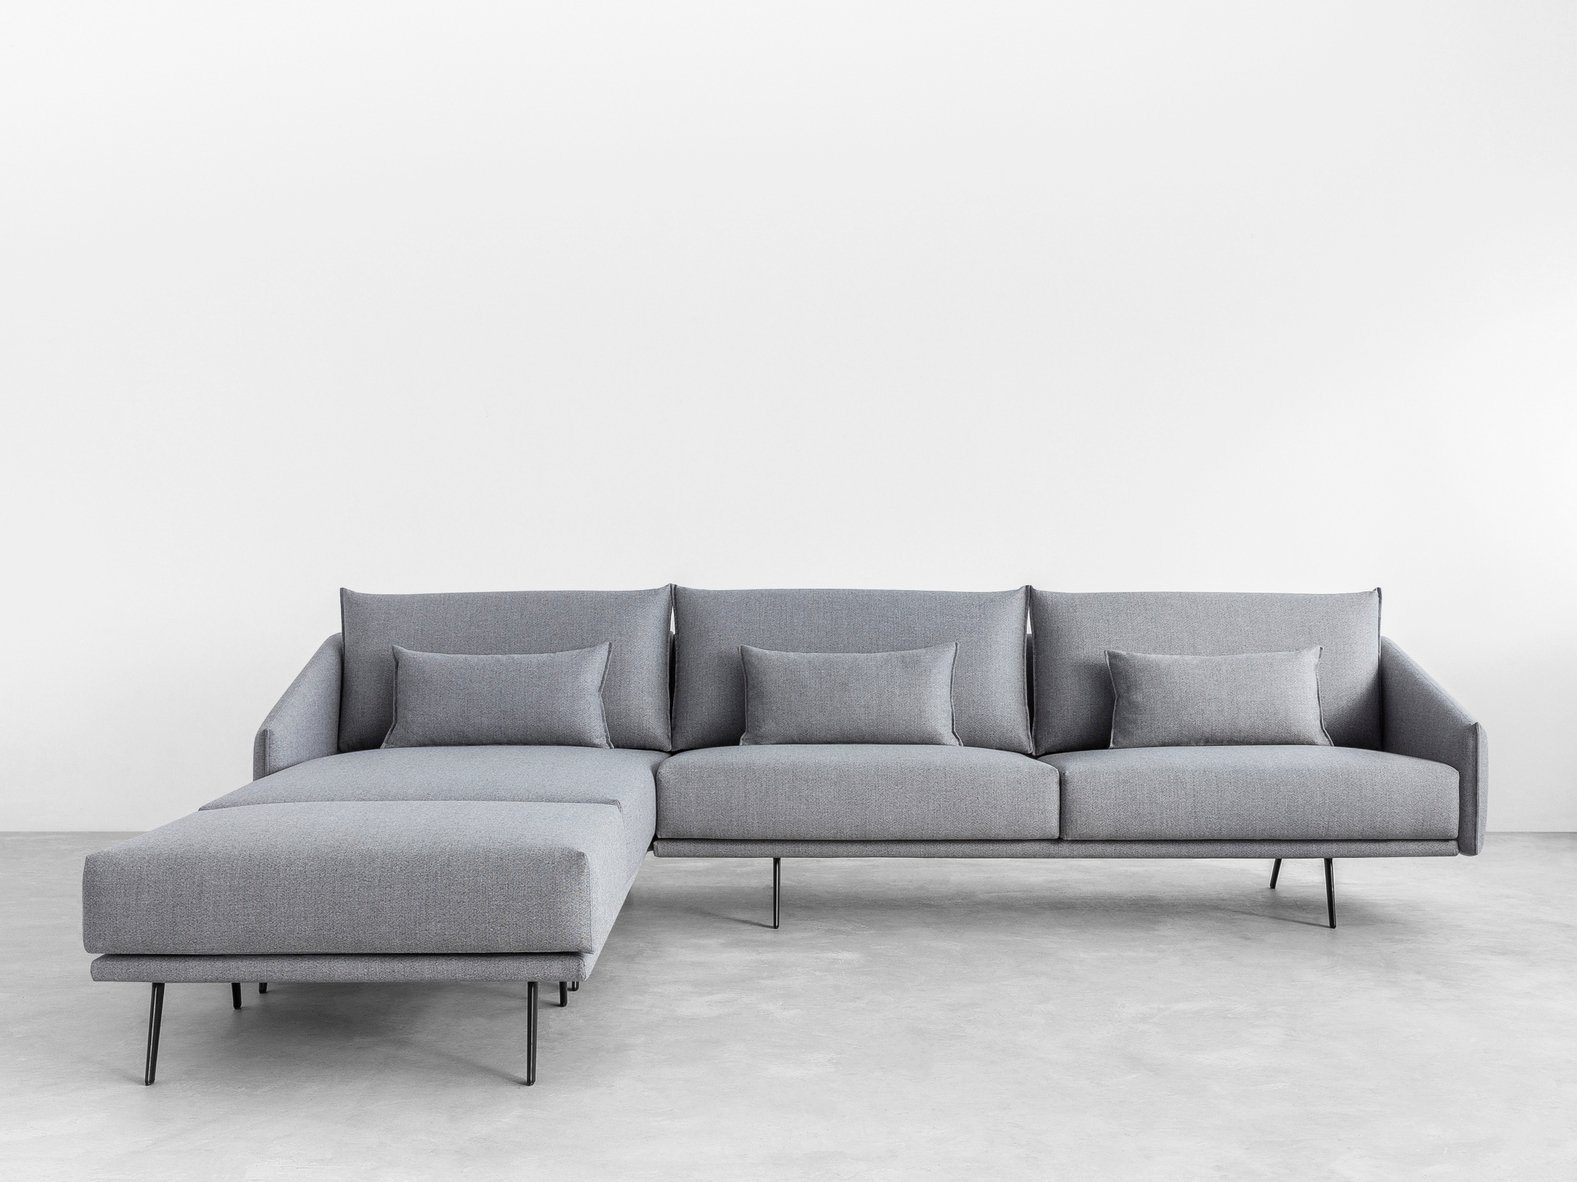 Costura sofa with chaise longue costura collection by stua for Chaise longue designer